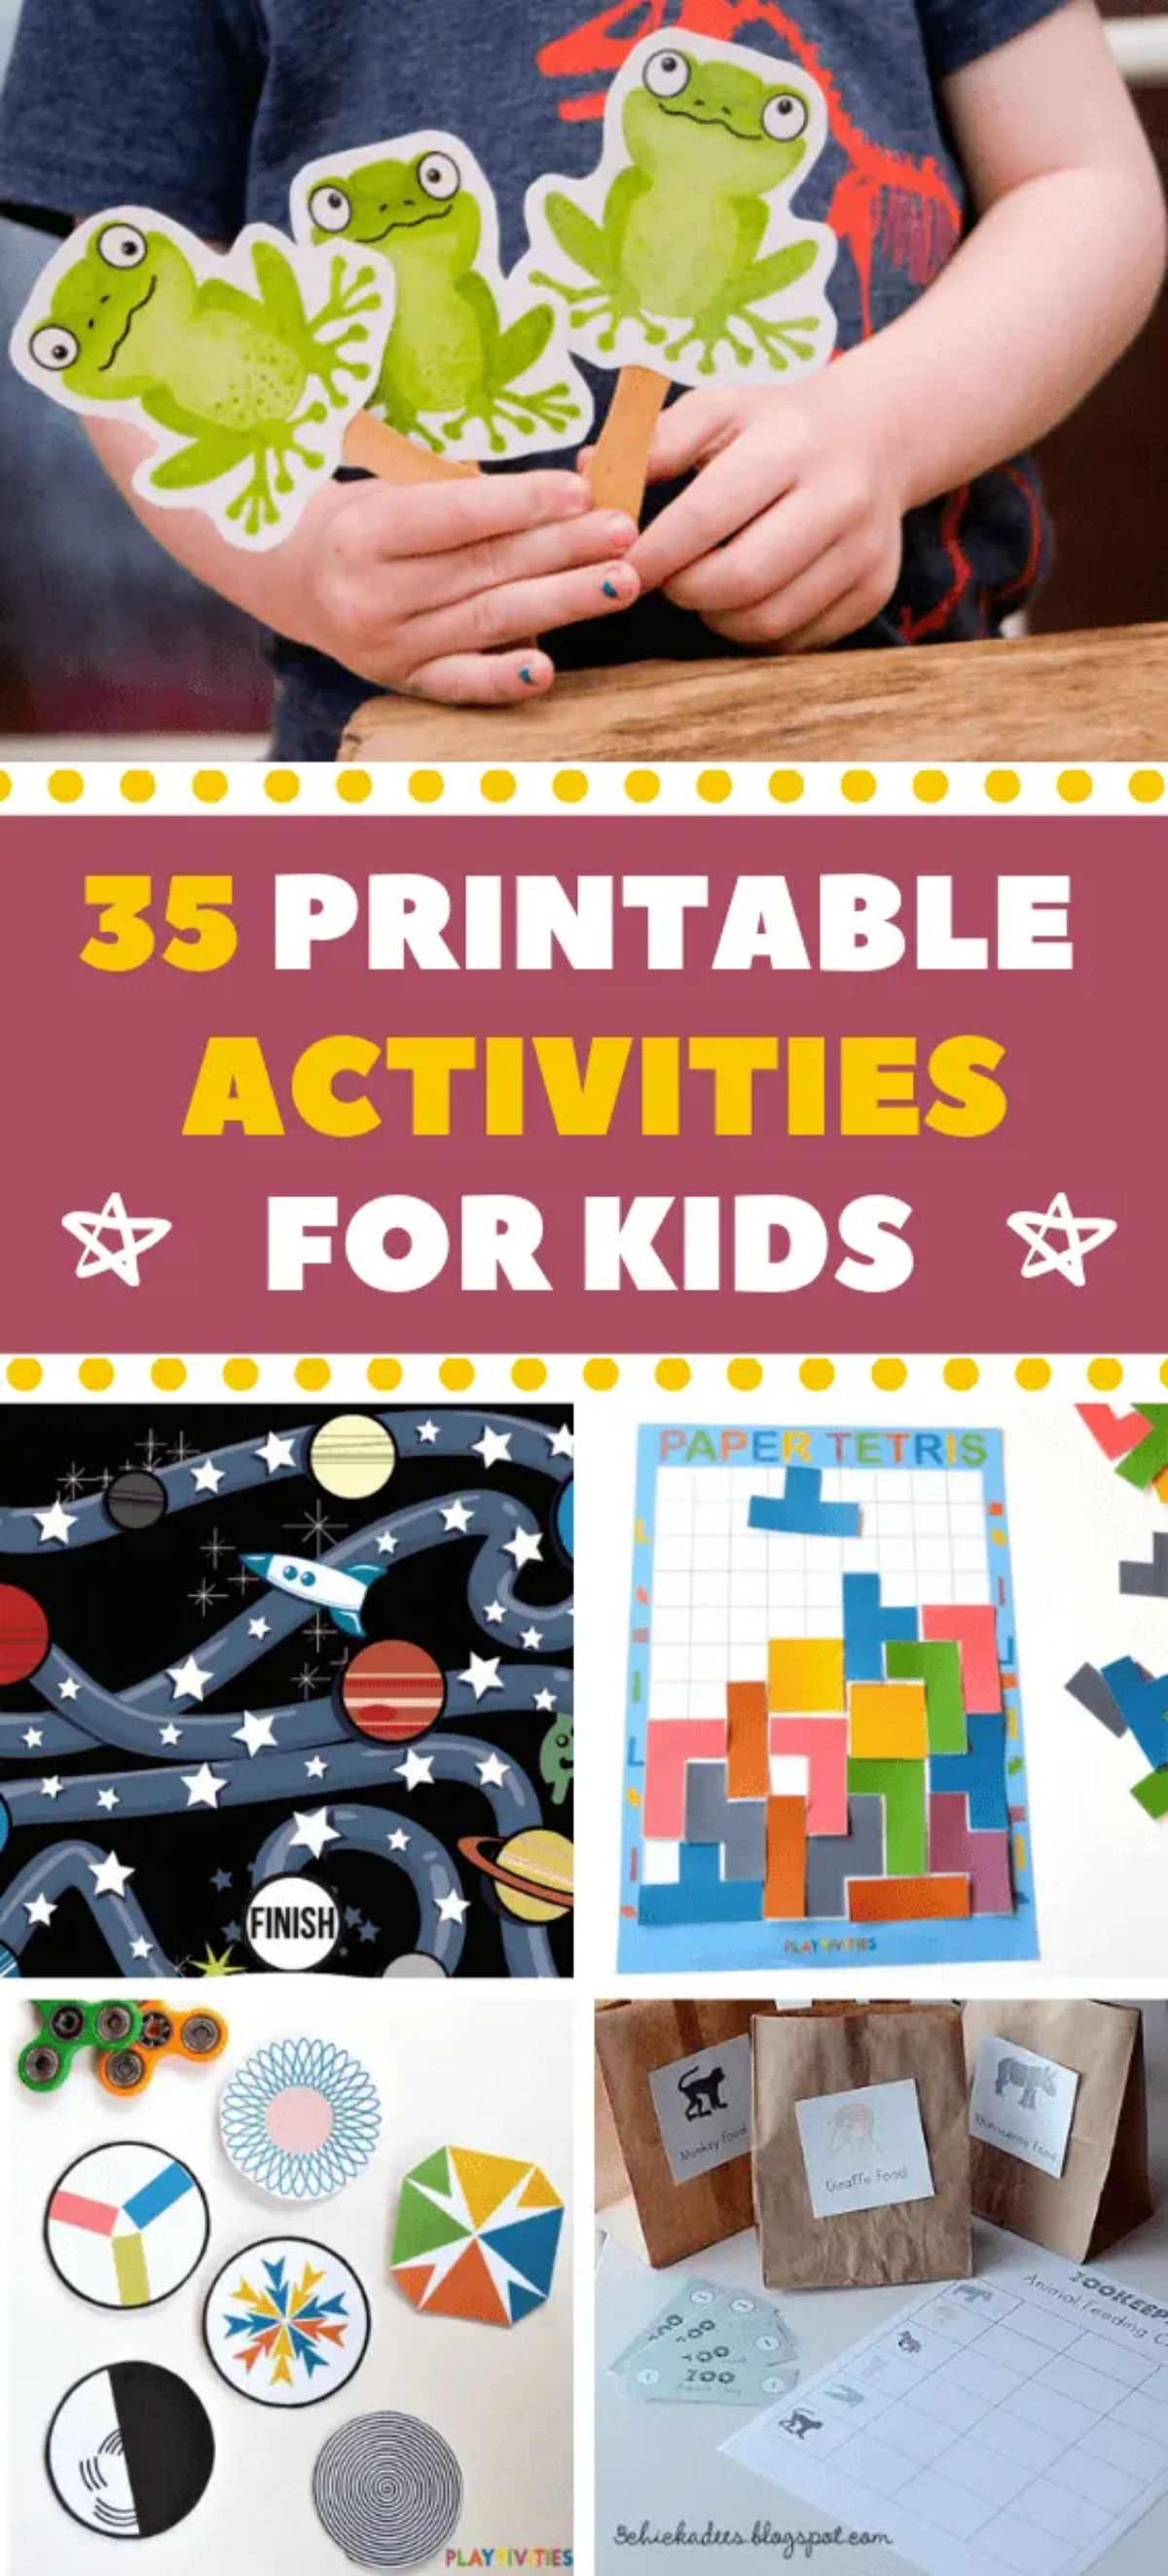 """the texxt reads """"35 printable activities for kids"""". The images are of various activity printables"""